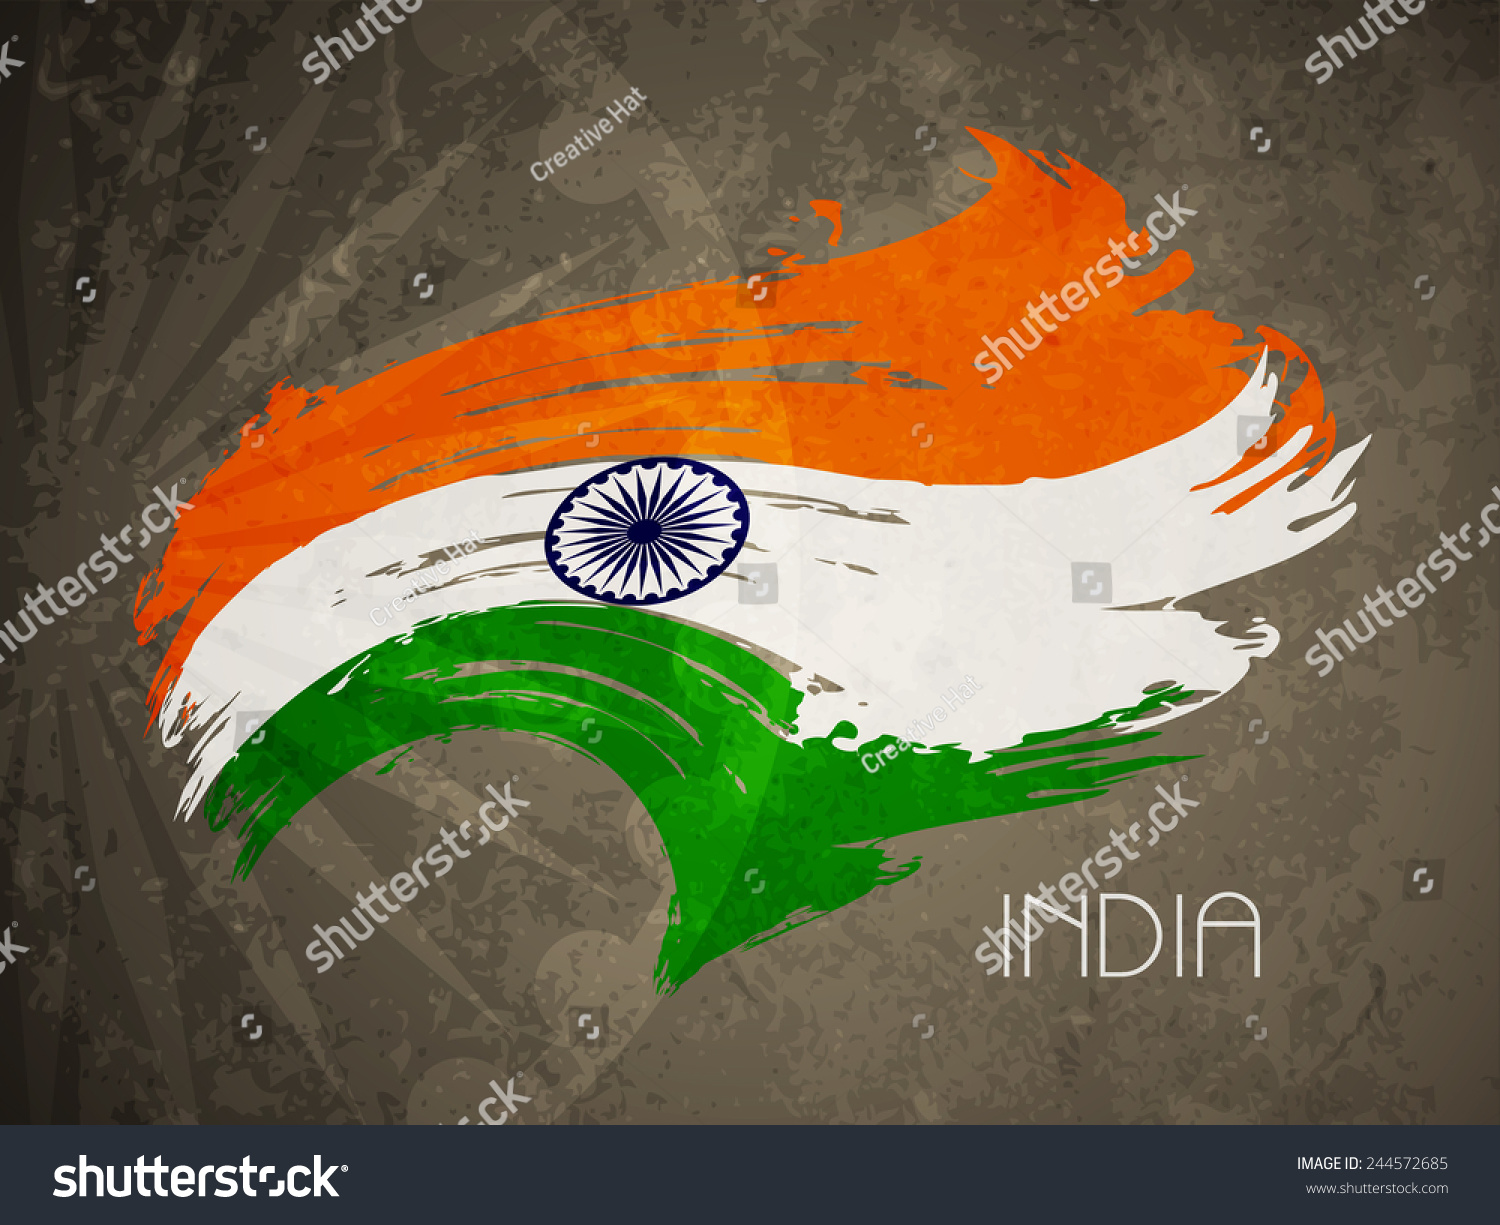 Indian Flag Theme: Grunge Texture Indian Flag Theme Background Stock Vector